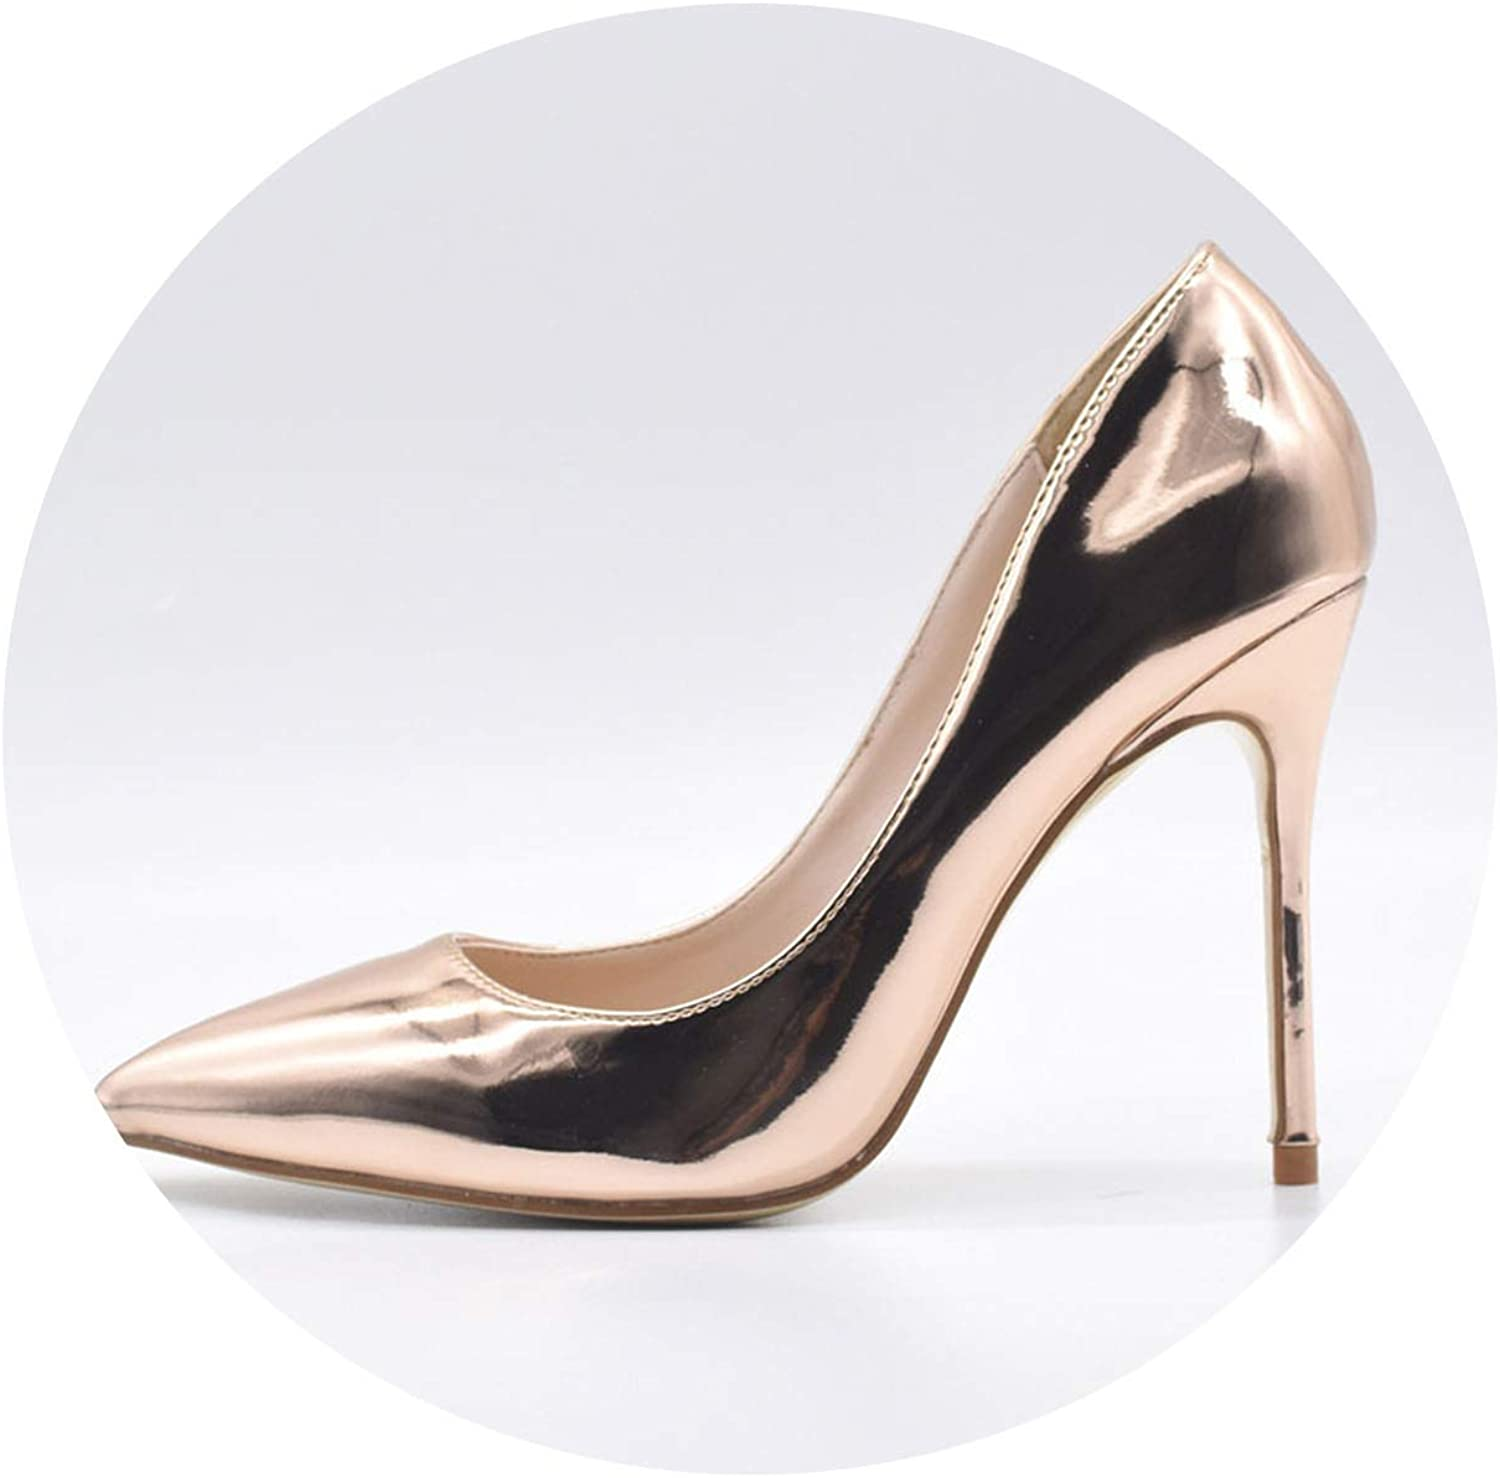 YP-fashion Women Sexy Pumps shoes 10cm 12cm pink gold Pointed Toe High Heeled shoes for Women